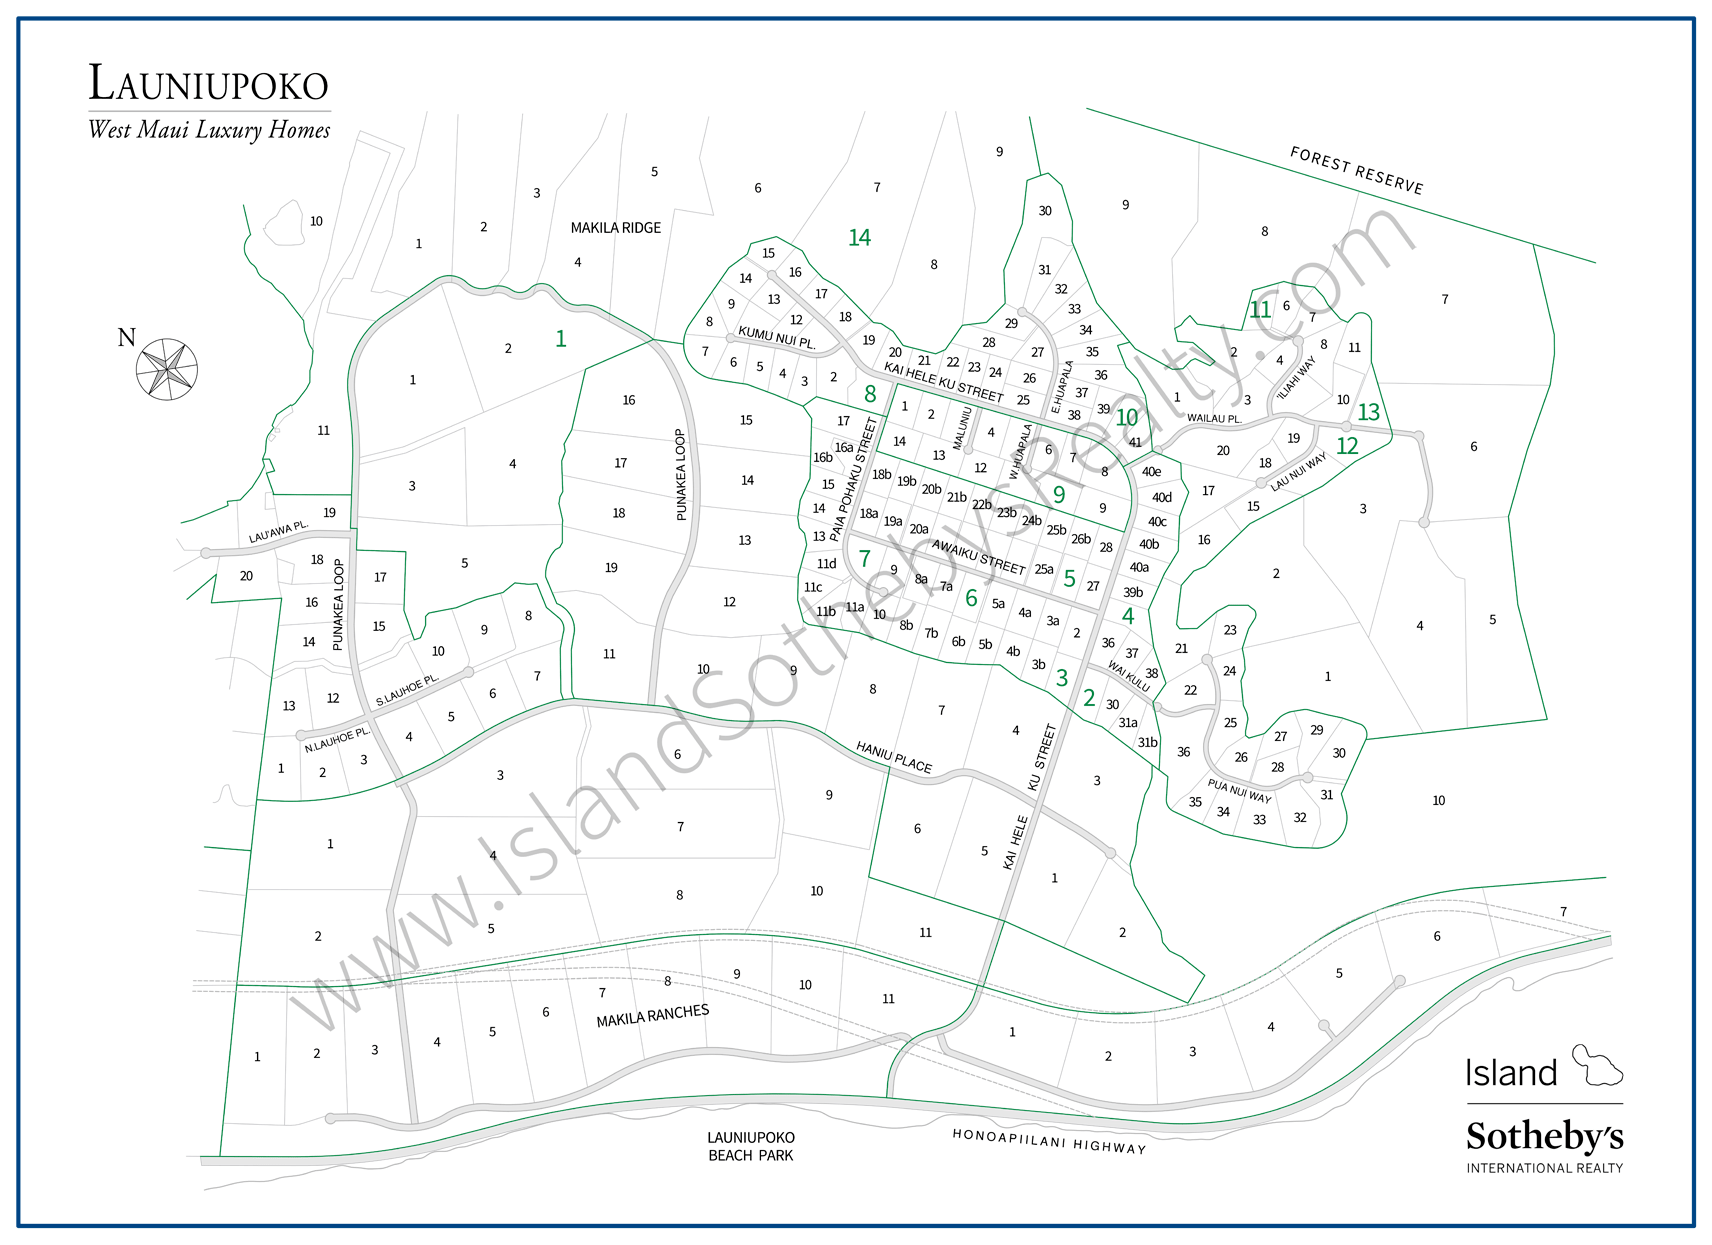 Map of Launiupoko Maui